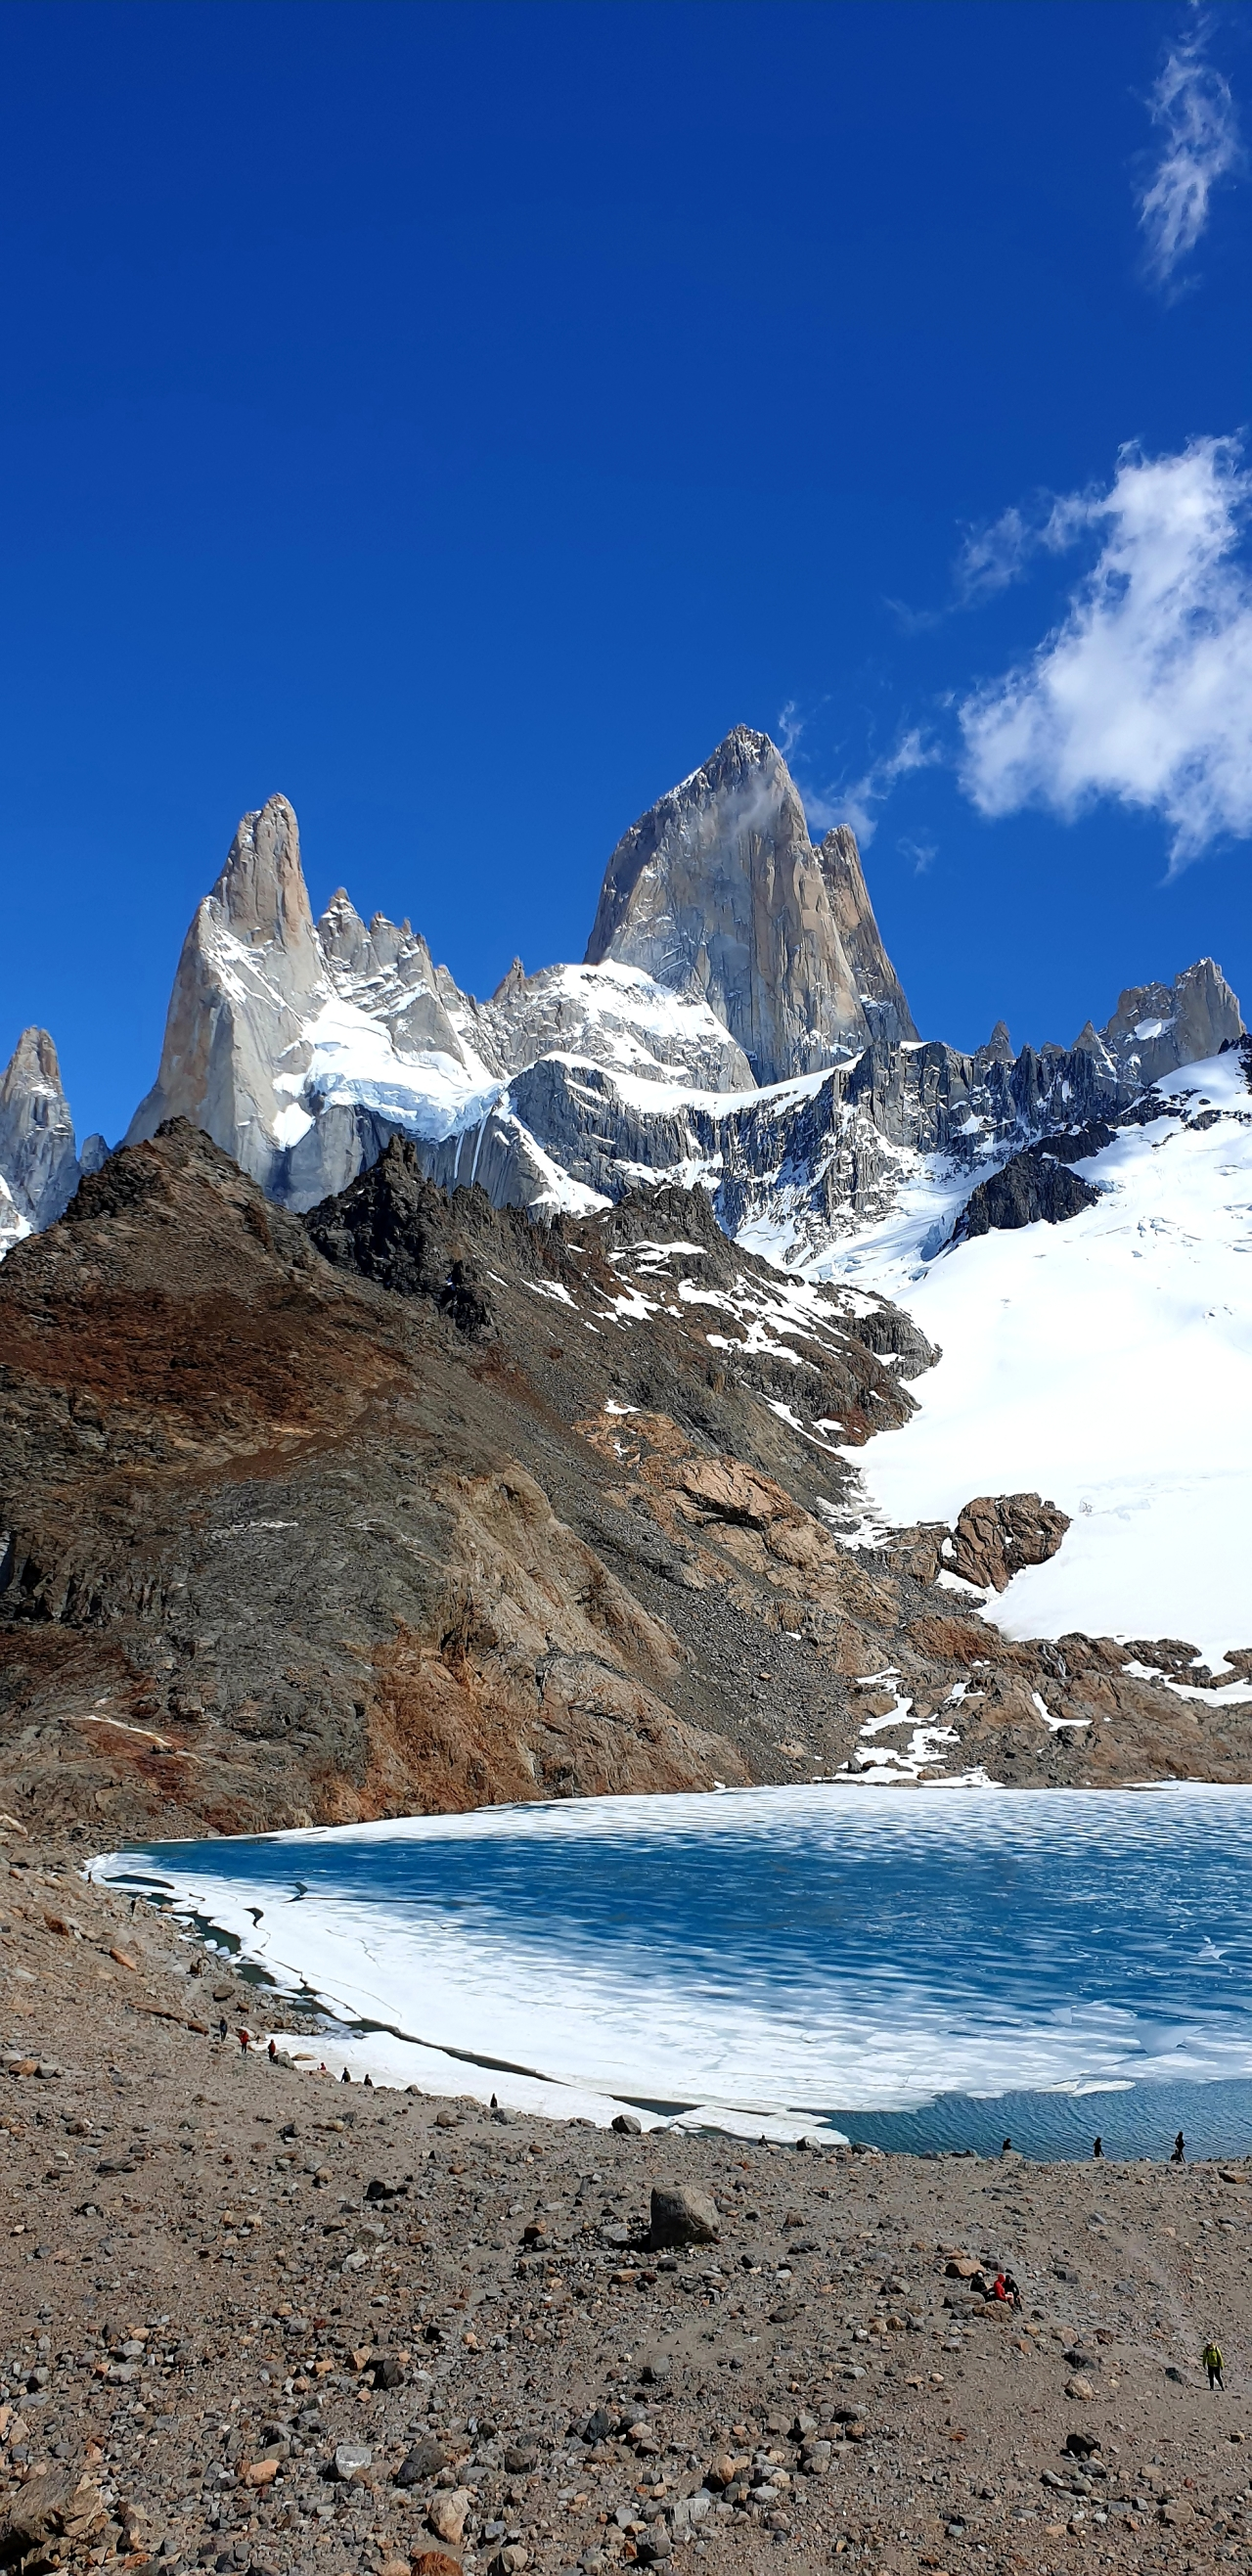 In Patagonia: part 2 (finding the fabulous)